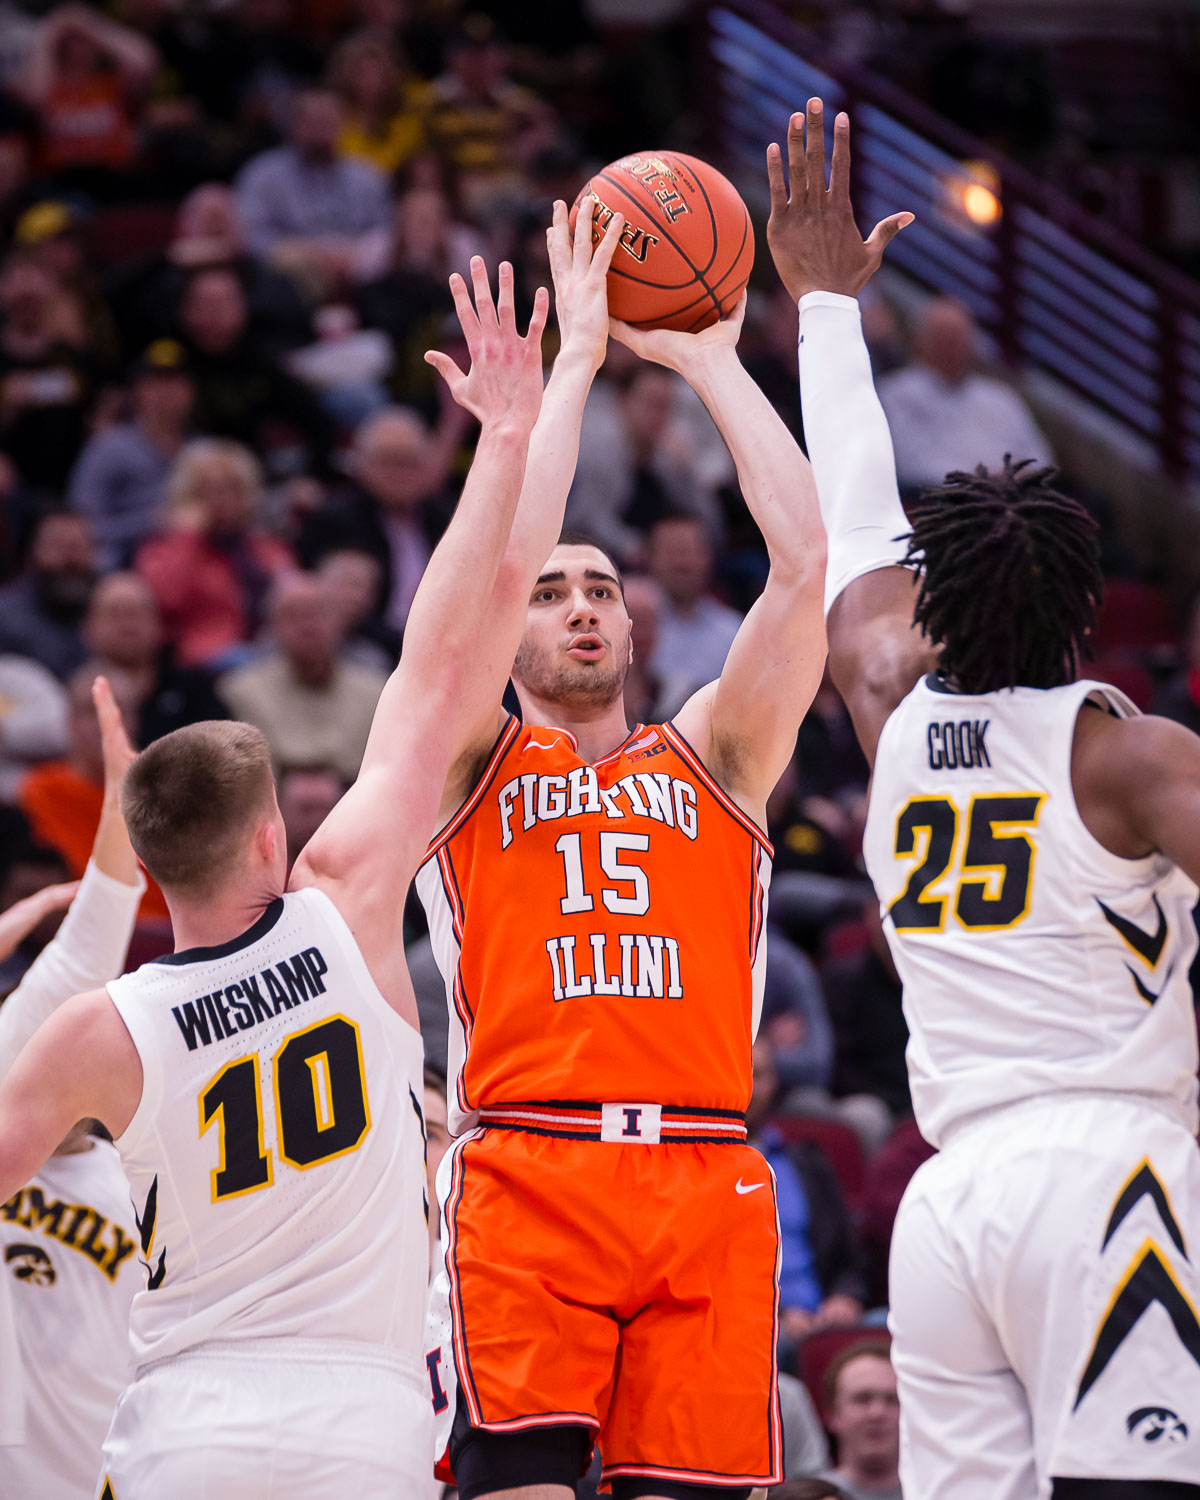 Illinois+forward+Giorgi+Bezhanishvili+%2815%29+shoots+during+the+game+against+Iowa+in+the+second+round+of+the+Big+Ten+Tournament+at+the+United+Center+on+Thursday%2C+March+14.+The+Illini+lost+83-62.